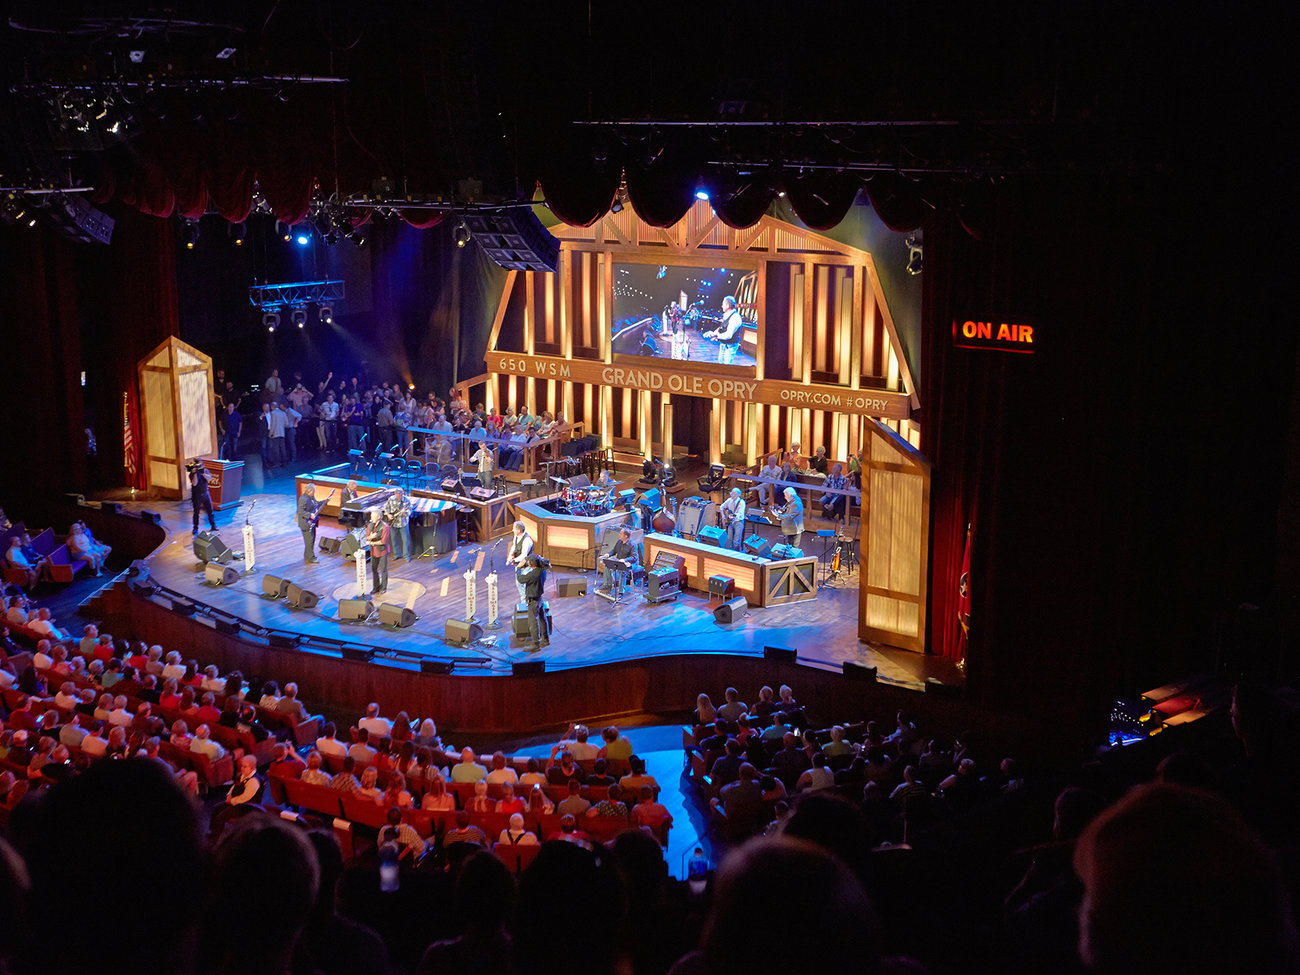 Grand Ole Opry Travel Leisure